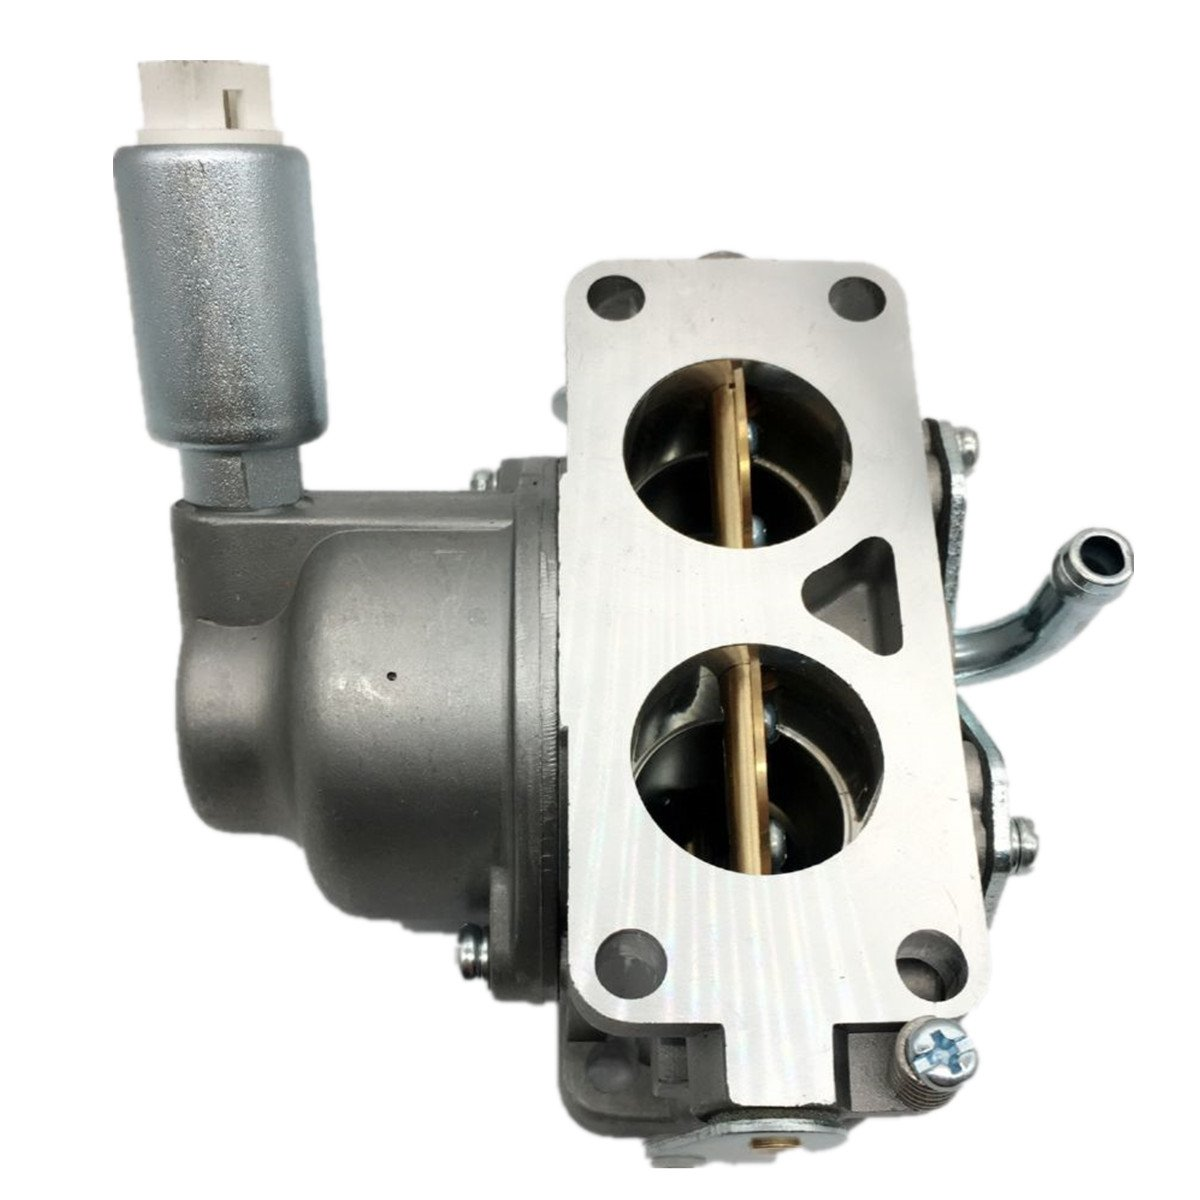 Wilk New Carburetor Carb 791230 699709 For Briggs Stratton V Twin 20 Hp And Engine Diagram 20hp 21hp 23hp 24hp 25hp Manual Choke